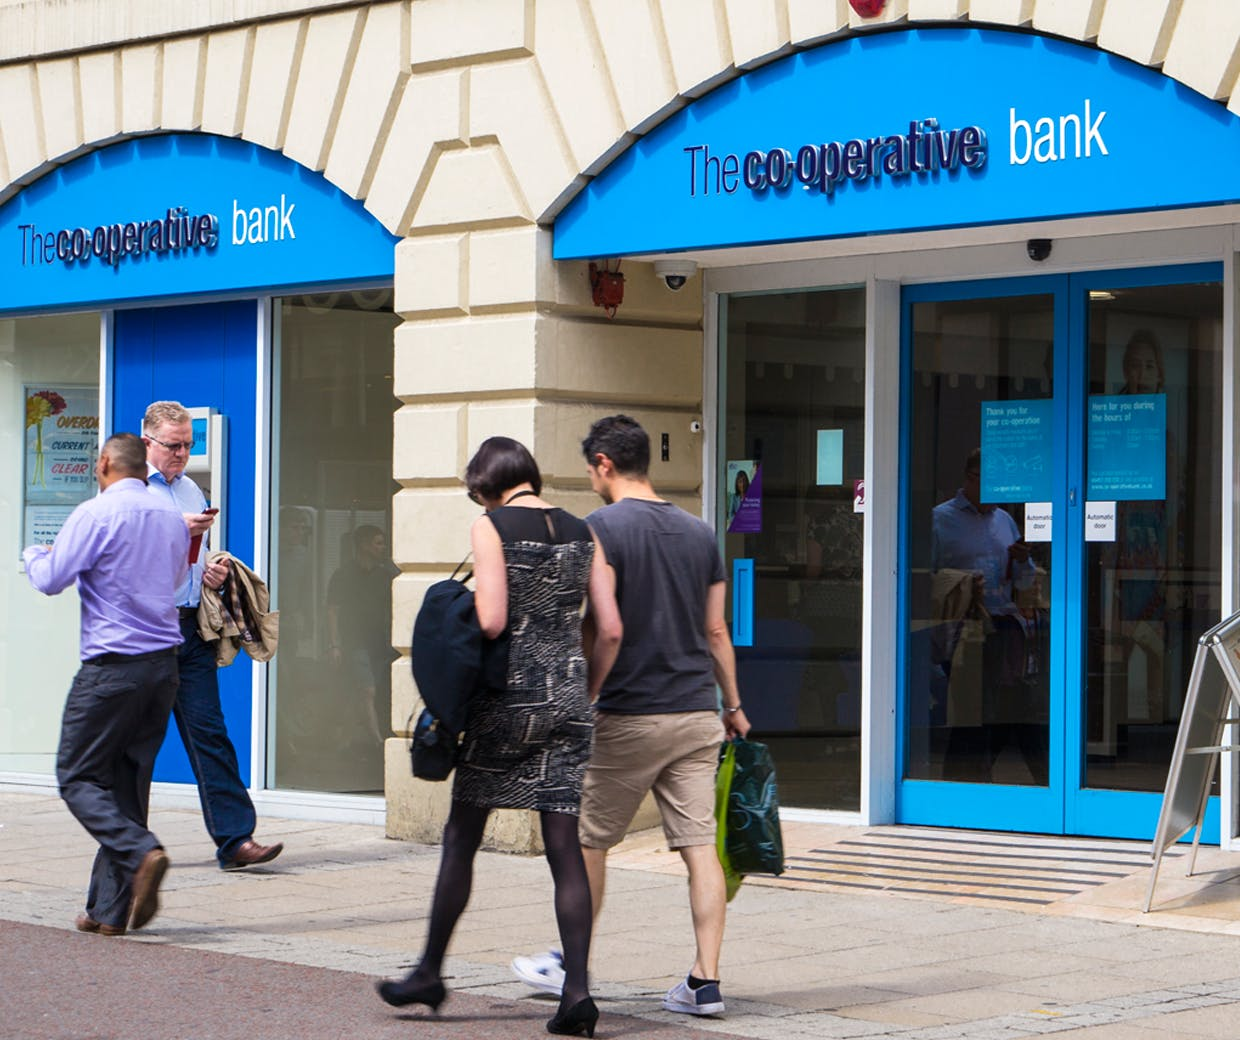 Co Op: 'Co-op Bank Rethinks Marketing As It Ups Focus On Targeted Ads